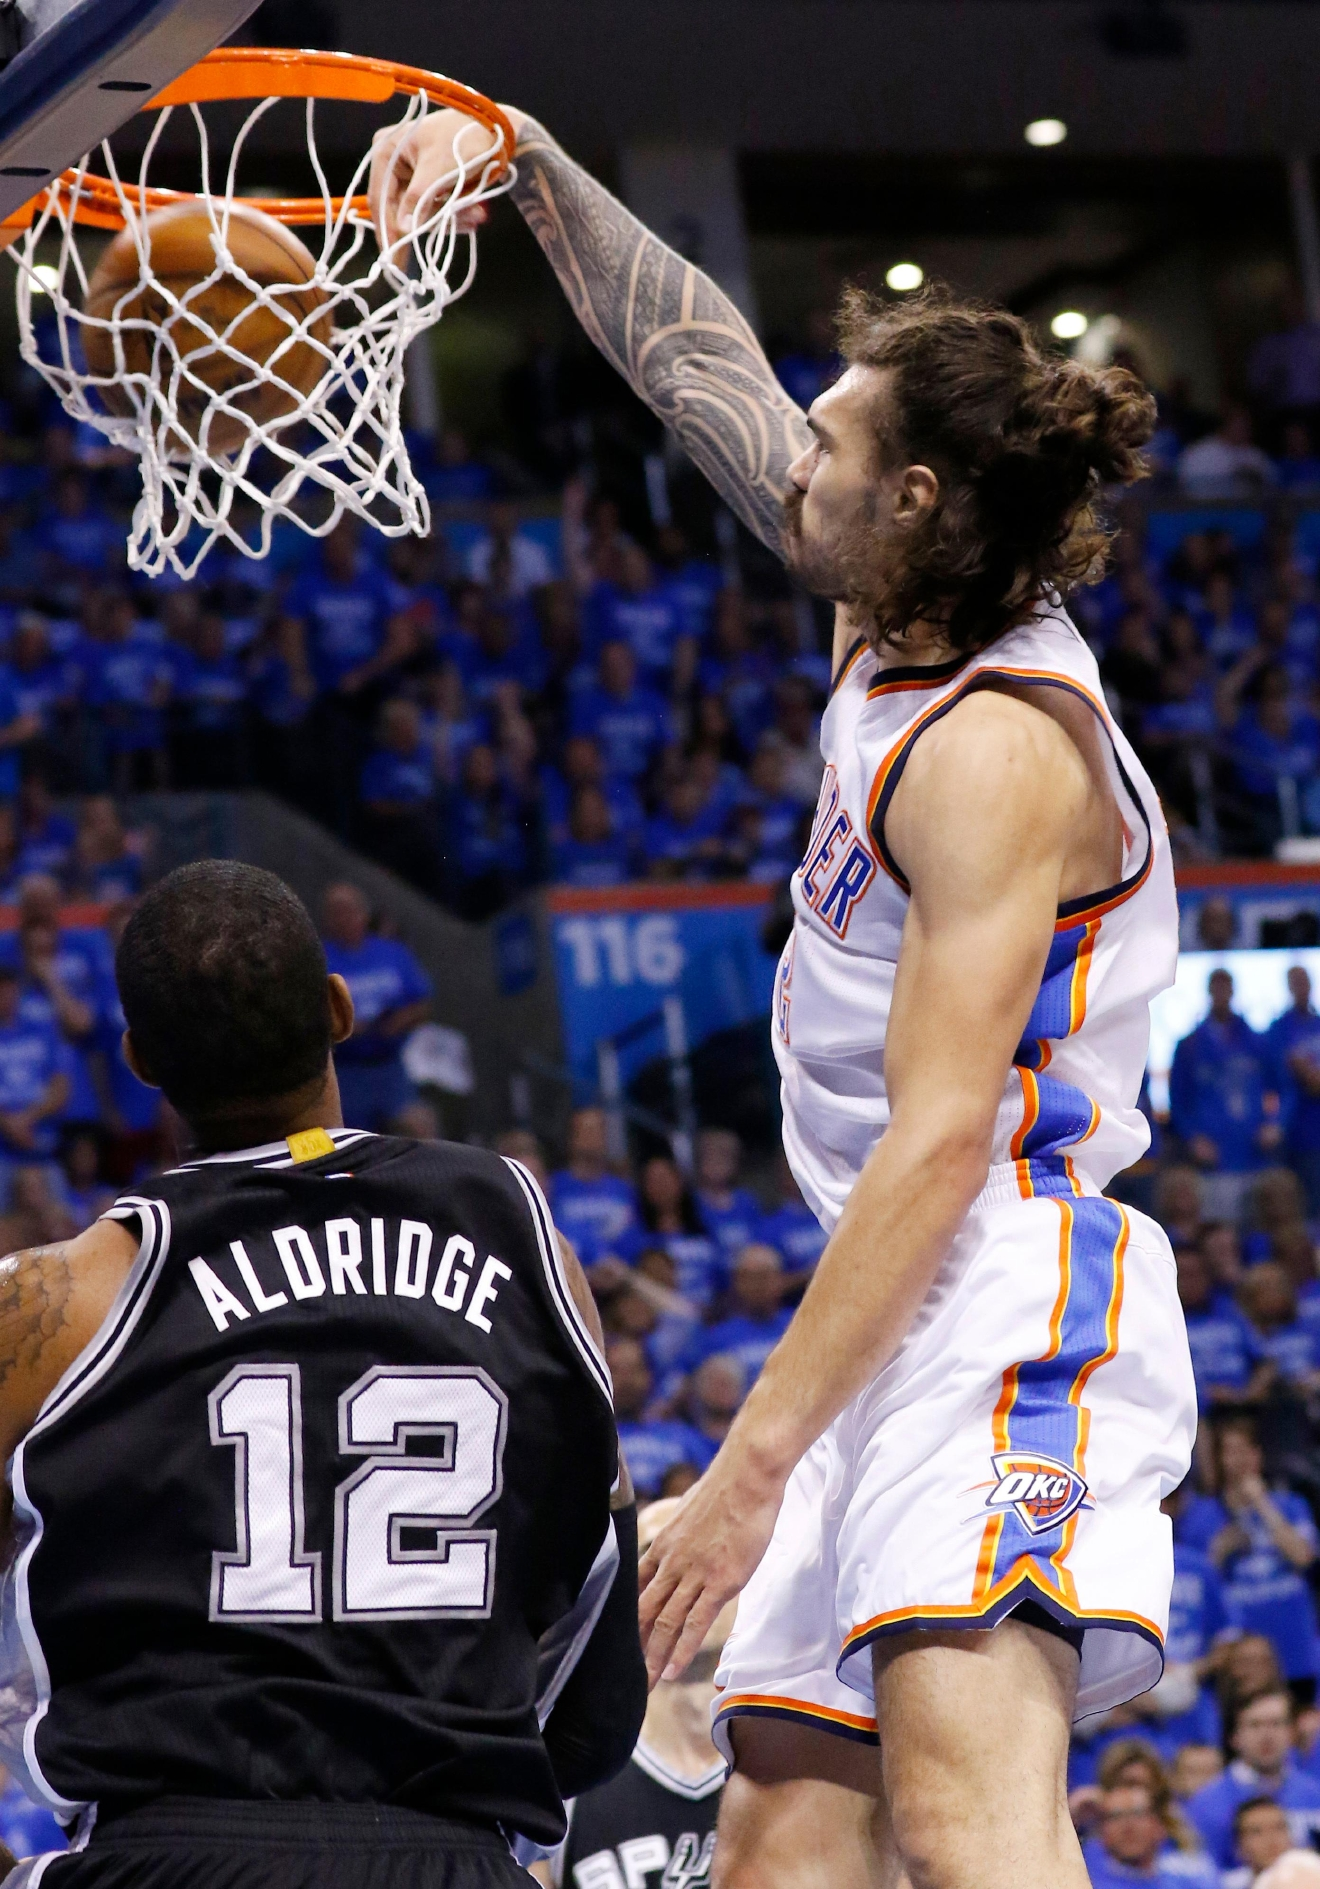 Oklahoma City Thunder center Steven Adams, right, dunks in front of San Antonio Spurs forward LaMarcus Aldridge (12) in the first quarter of Game 6 of a second-round NBA basketball playoff series in Oklahoma City, Thursday, May 12, 2016. (AP Photo/Alonzo Adams)